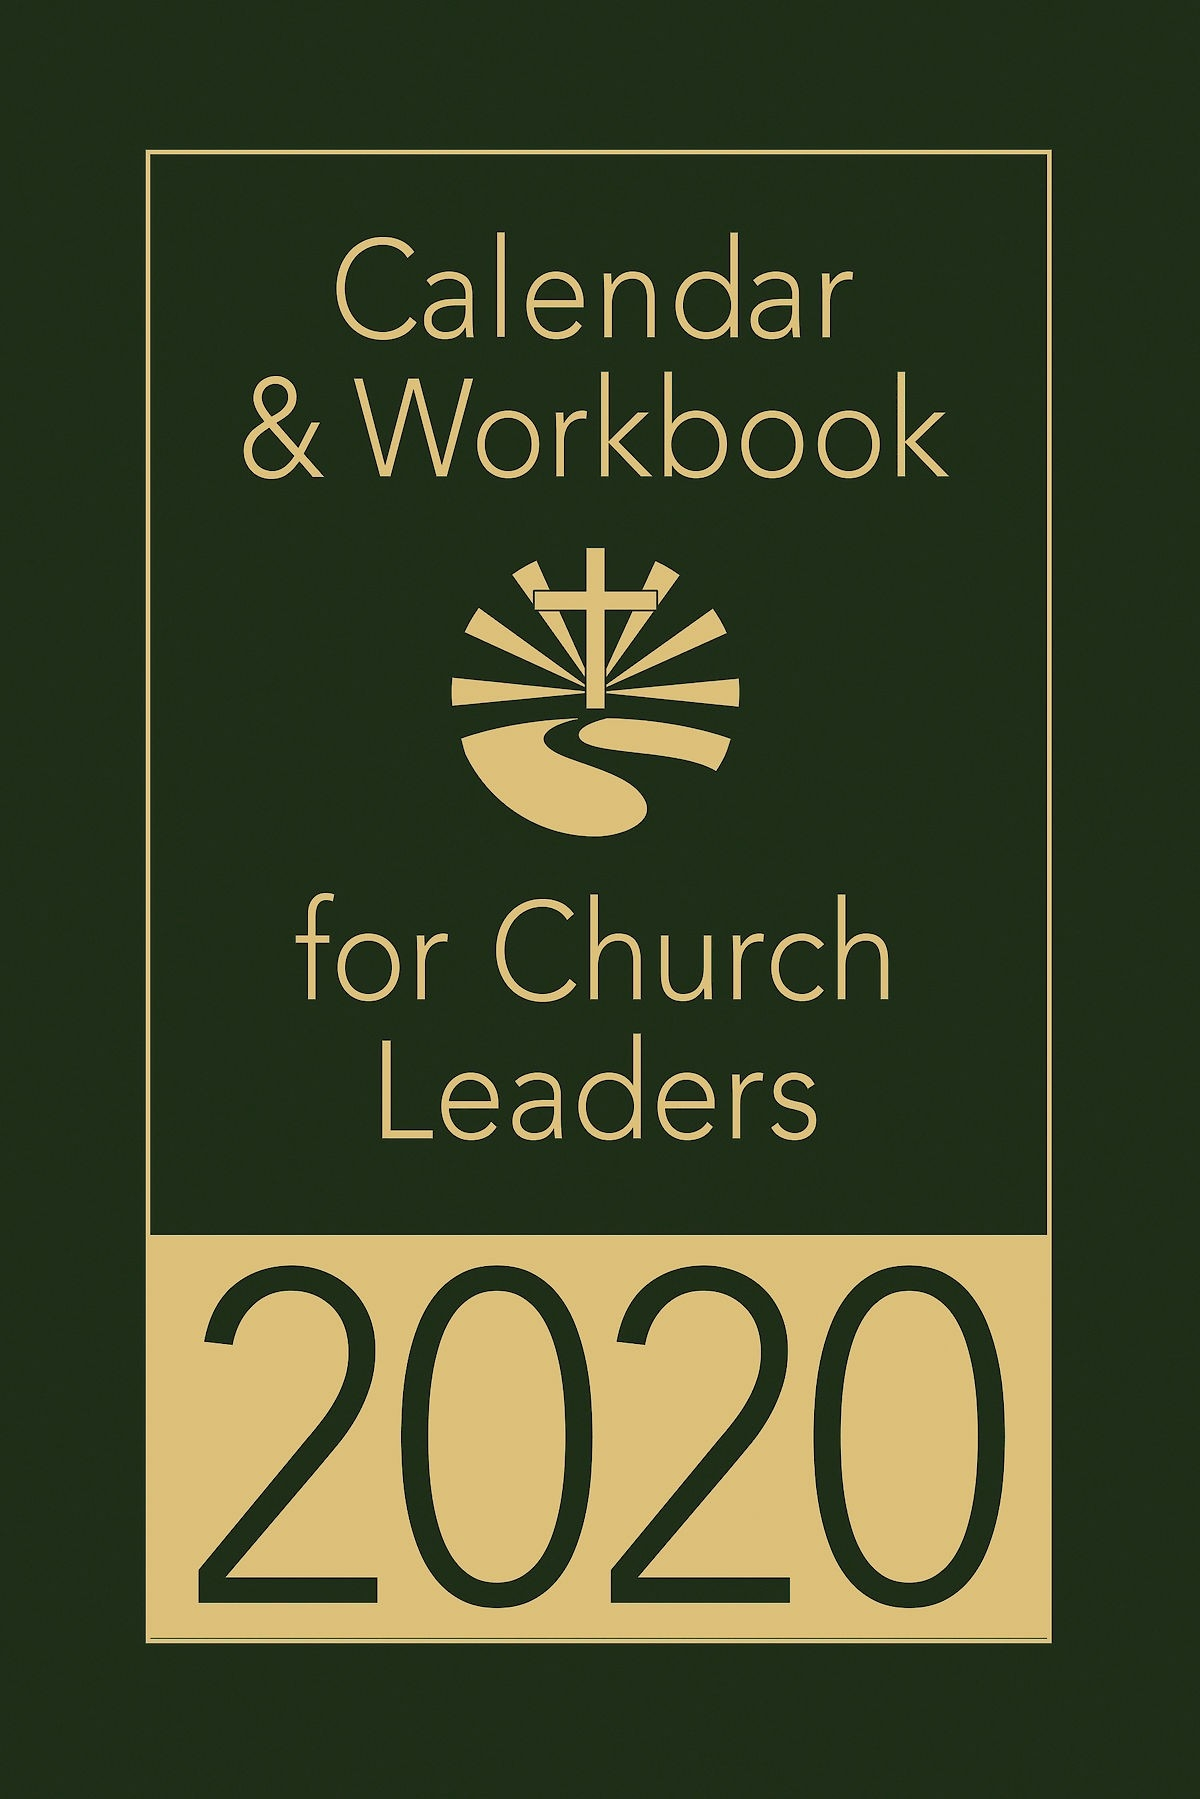 Calendar & Workbook For Church Leaders 2020 - - Desk  Revised Common Lectionary 2020 Sunday And Special Day Only Year A Calendar